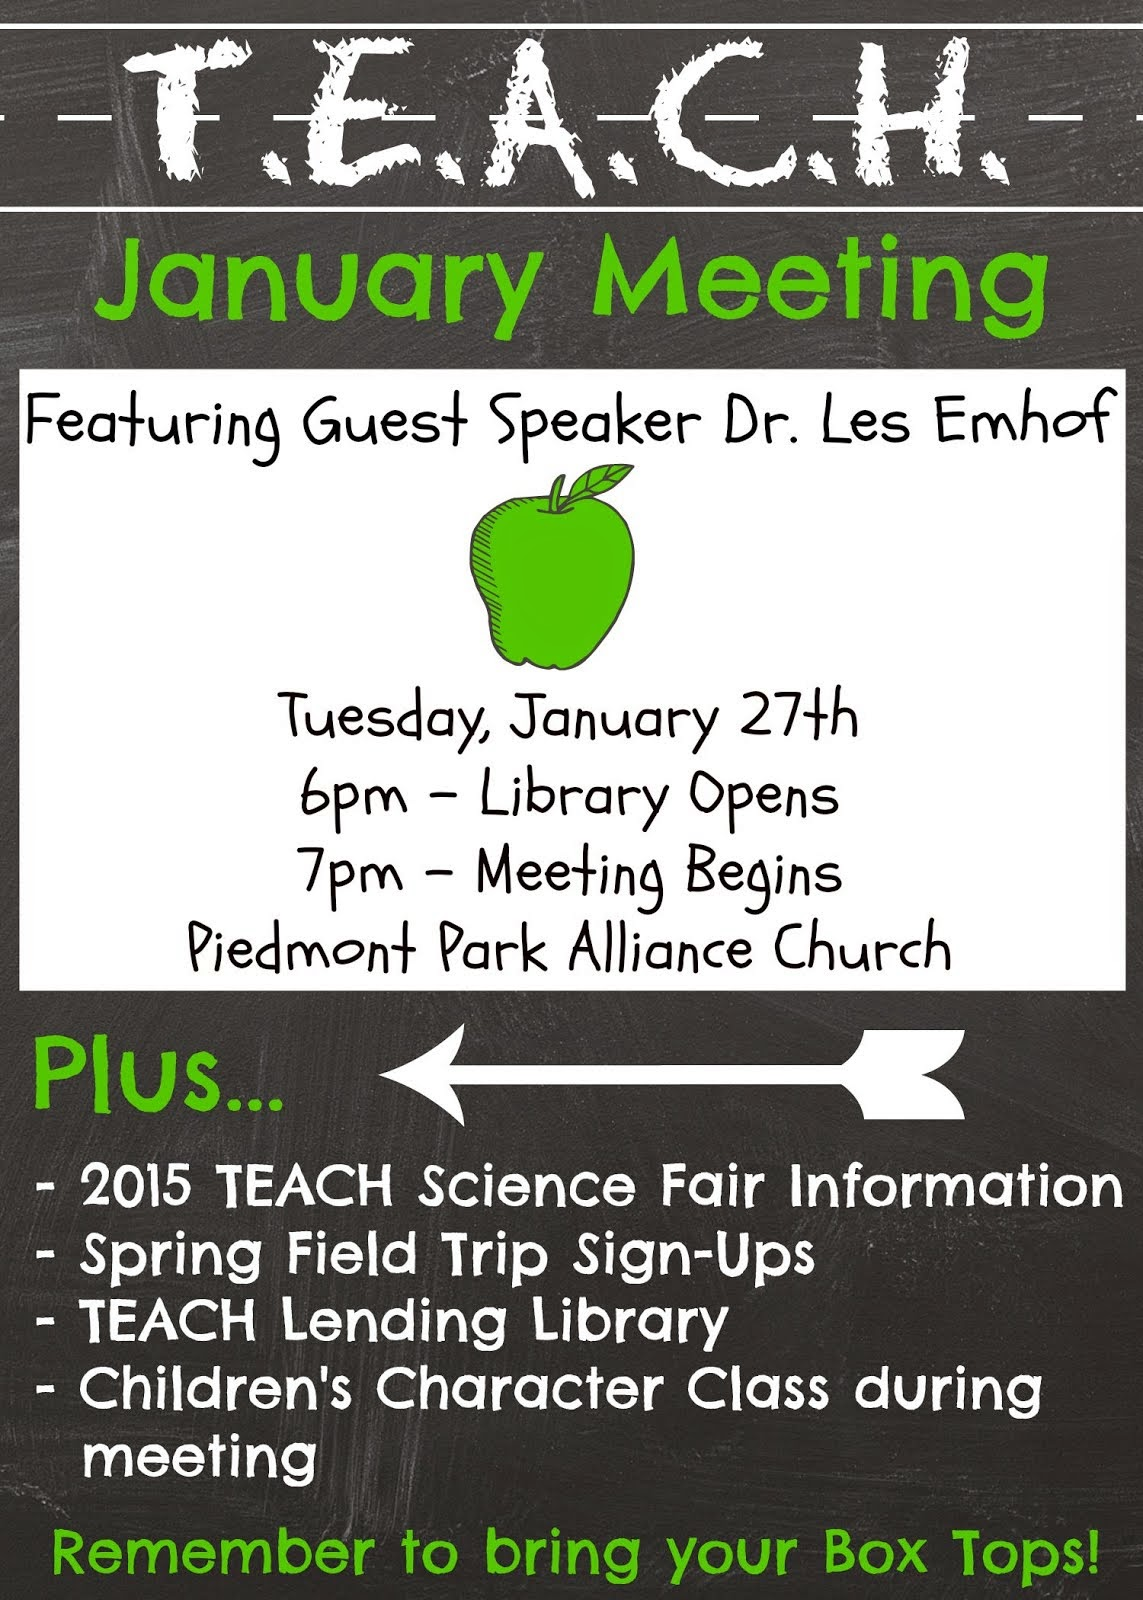 Join us for the next TEACH Meeting: